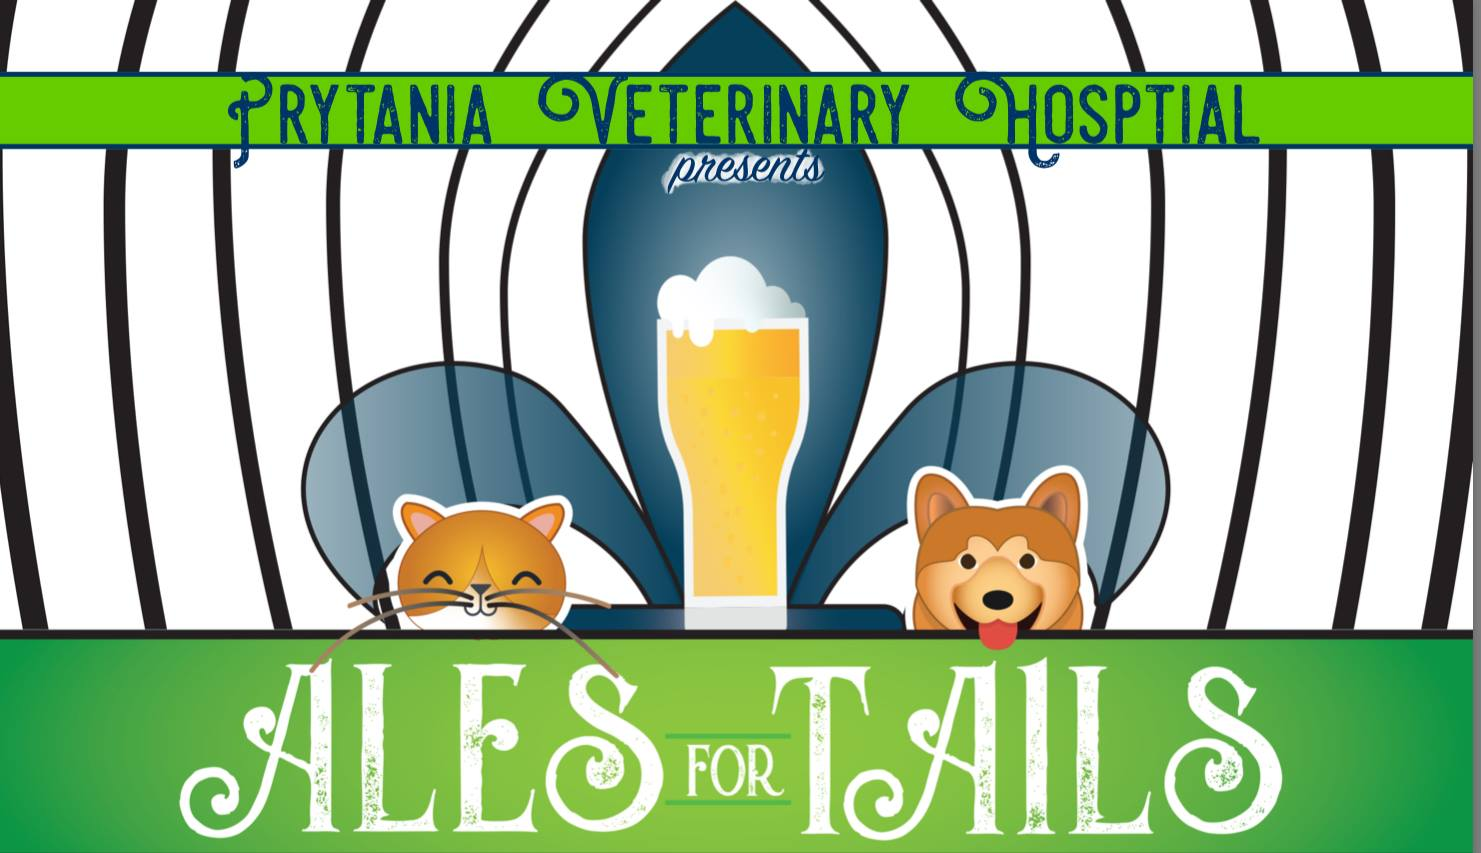 Miel Brewery_New Orleans_Ales of Tales 2019_Prytania Veterinary Hospital